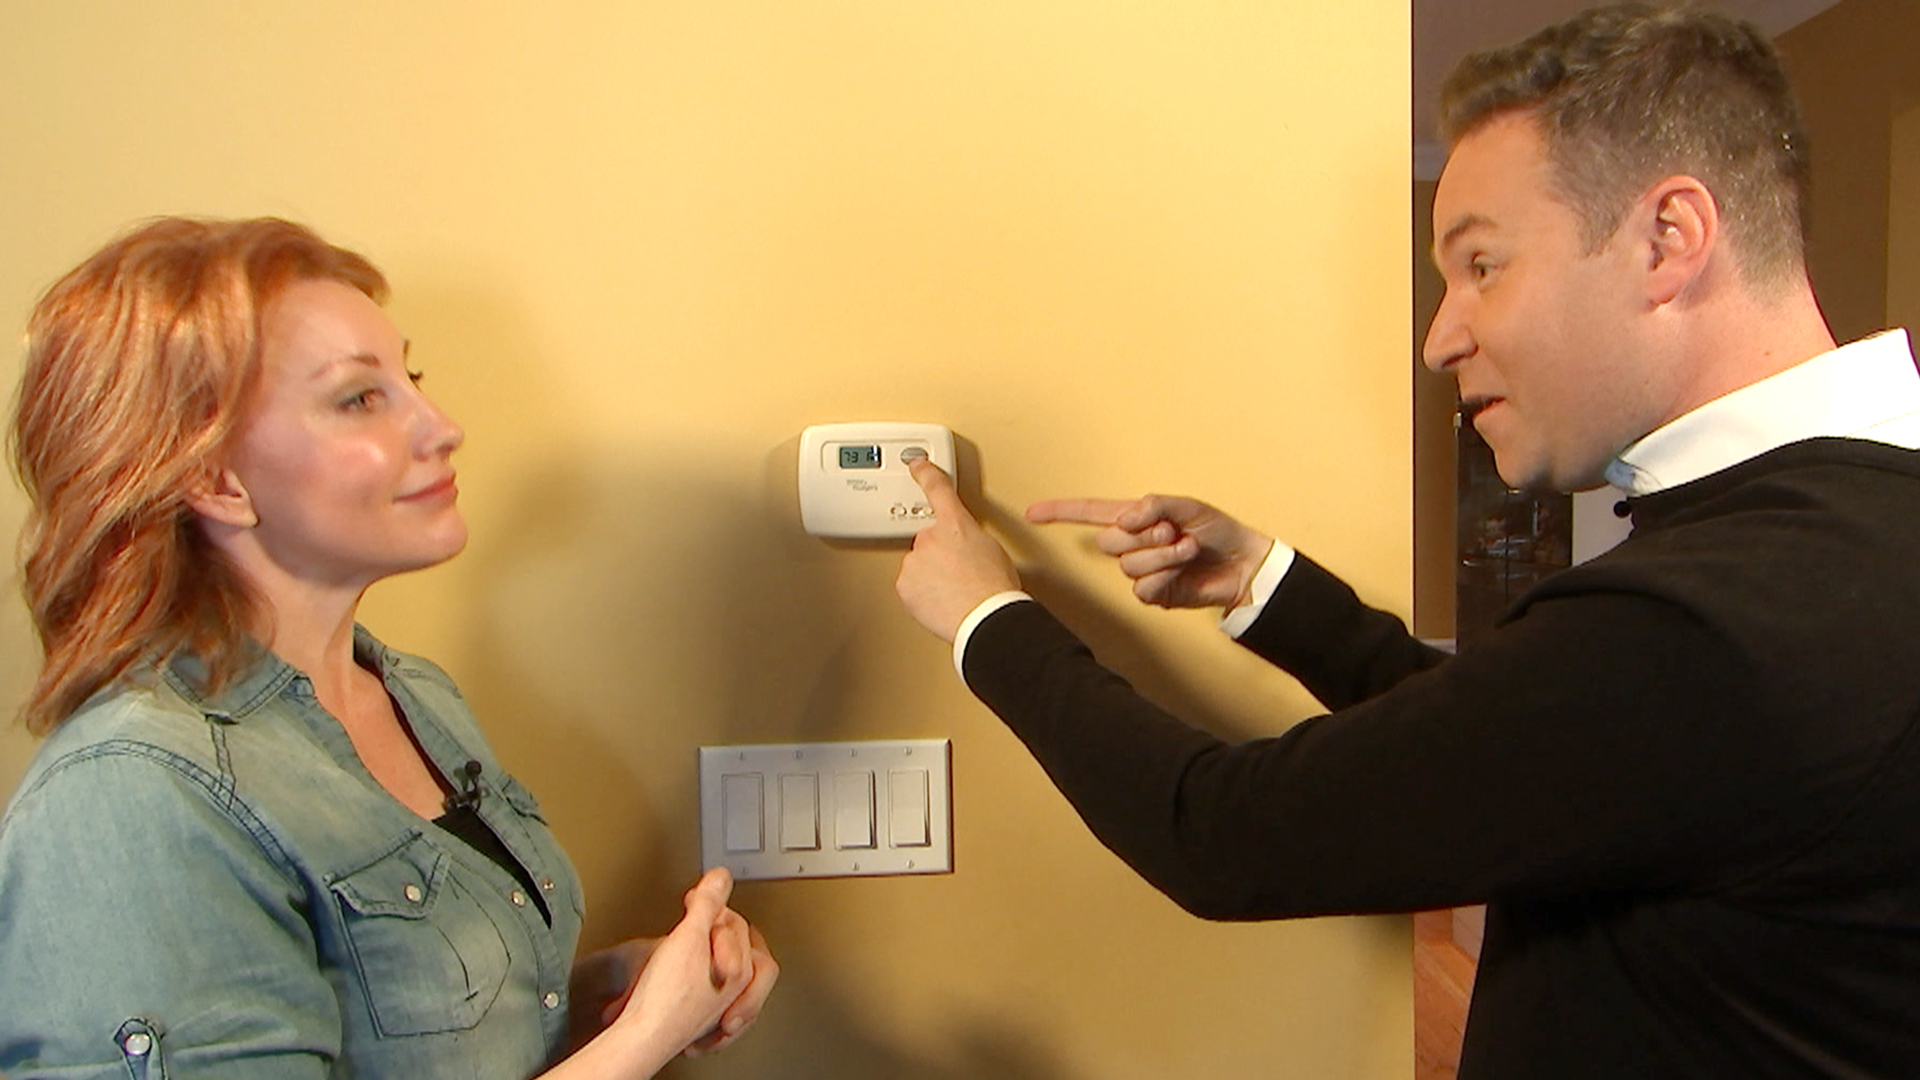 Simple home hacks could save up to 65 percent on your utility bills